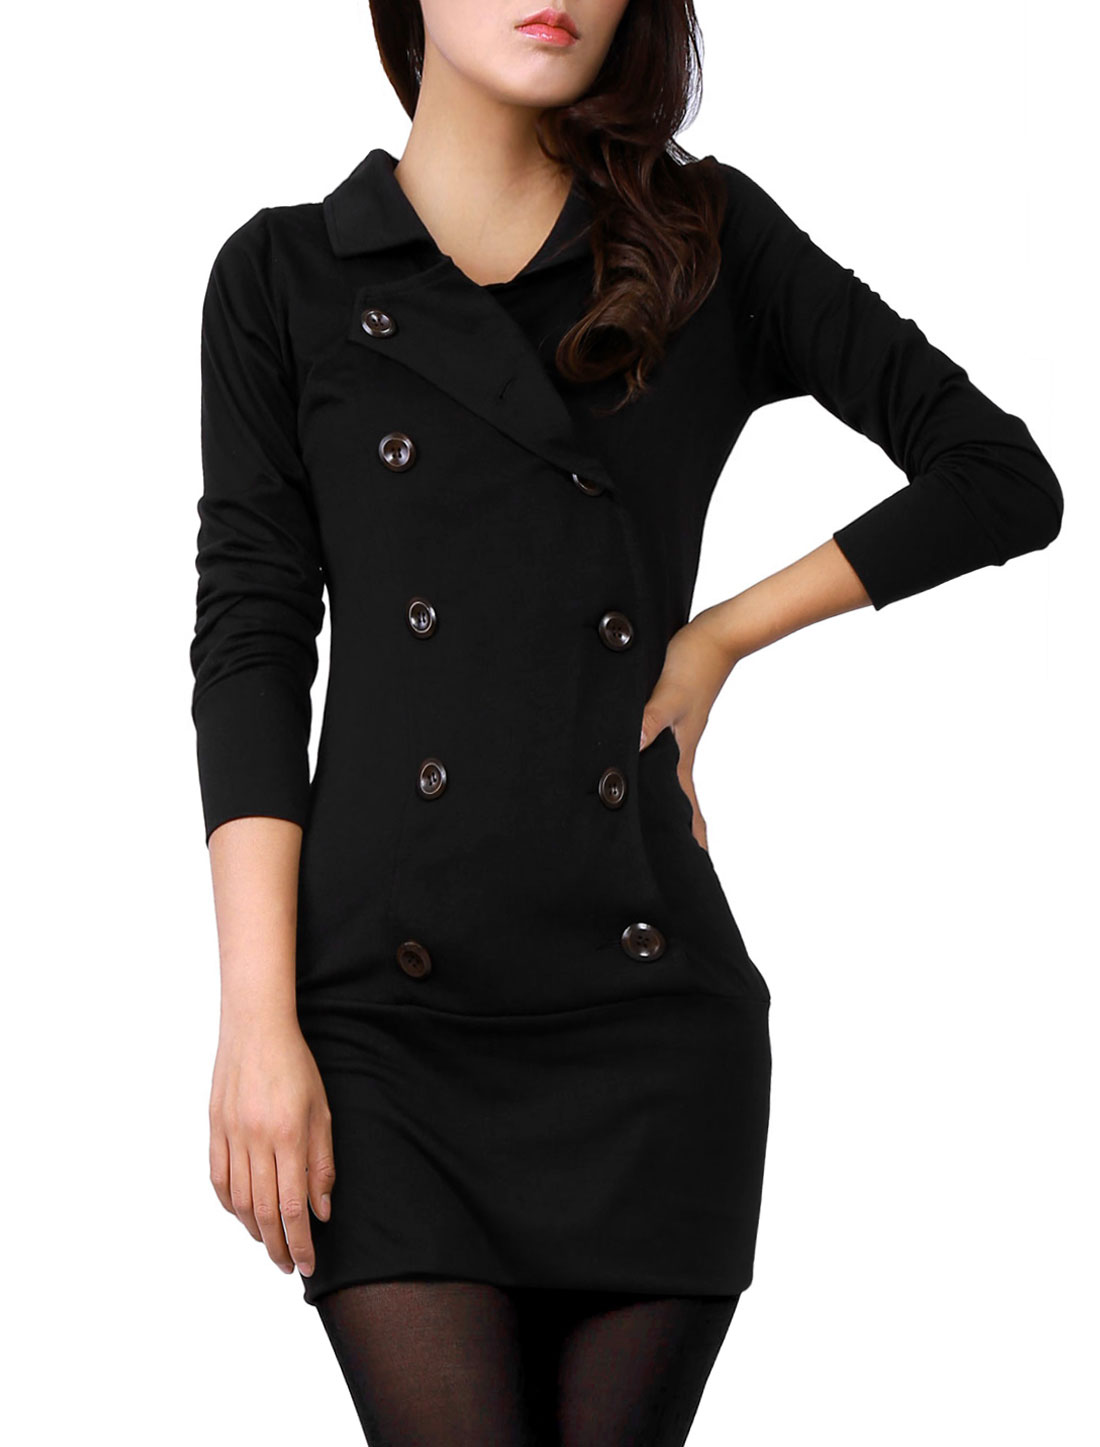 Ladies Double Breast Black Long Sleeve Spring Mini Dress L